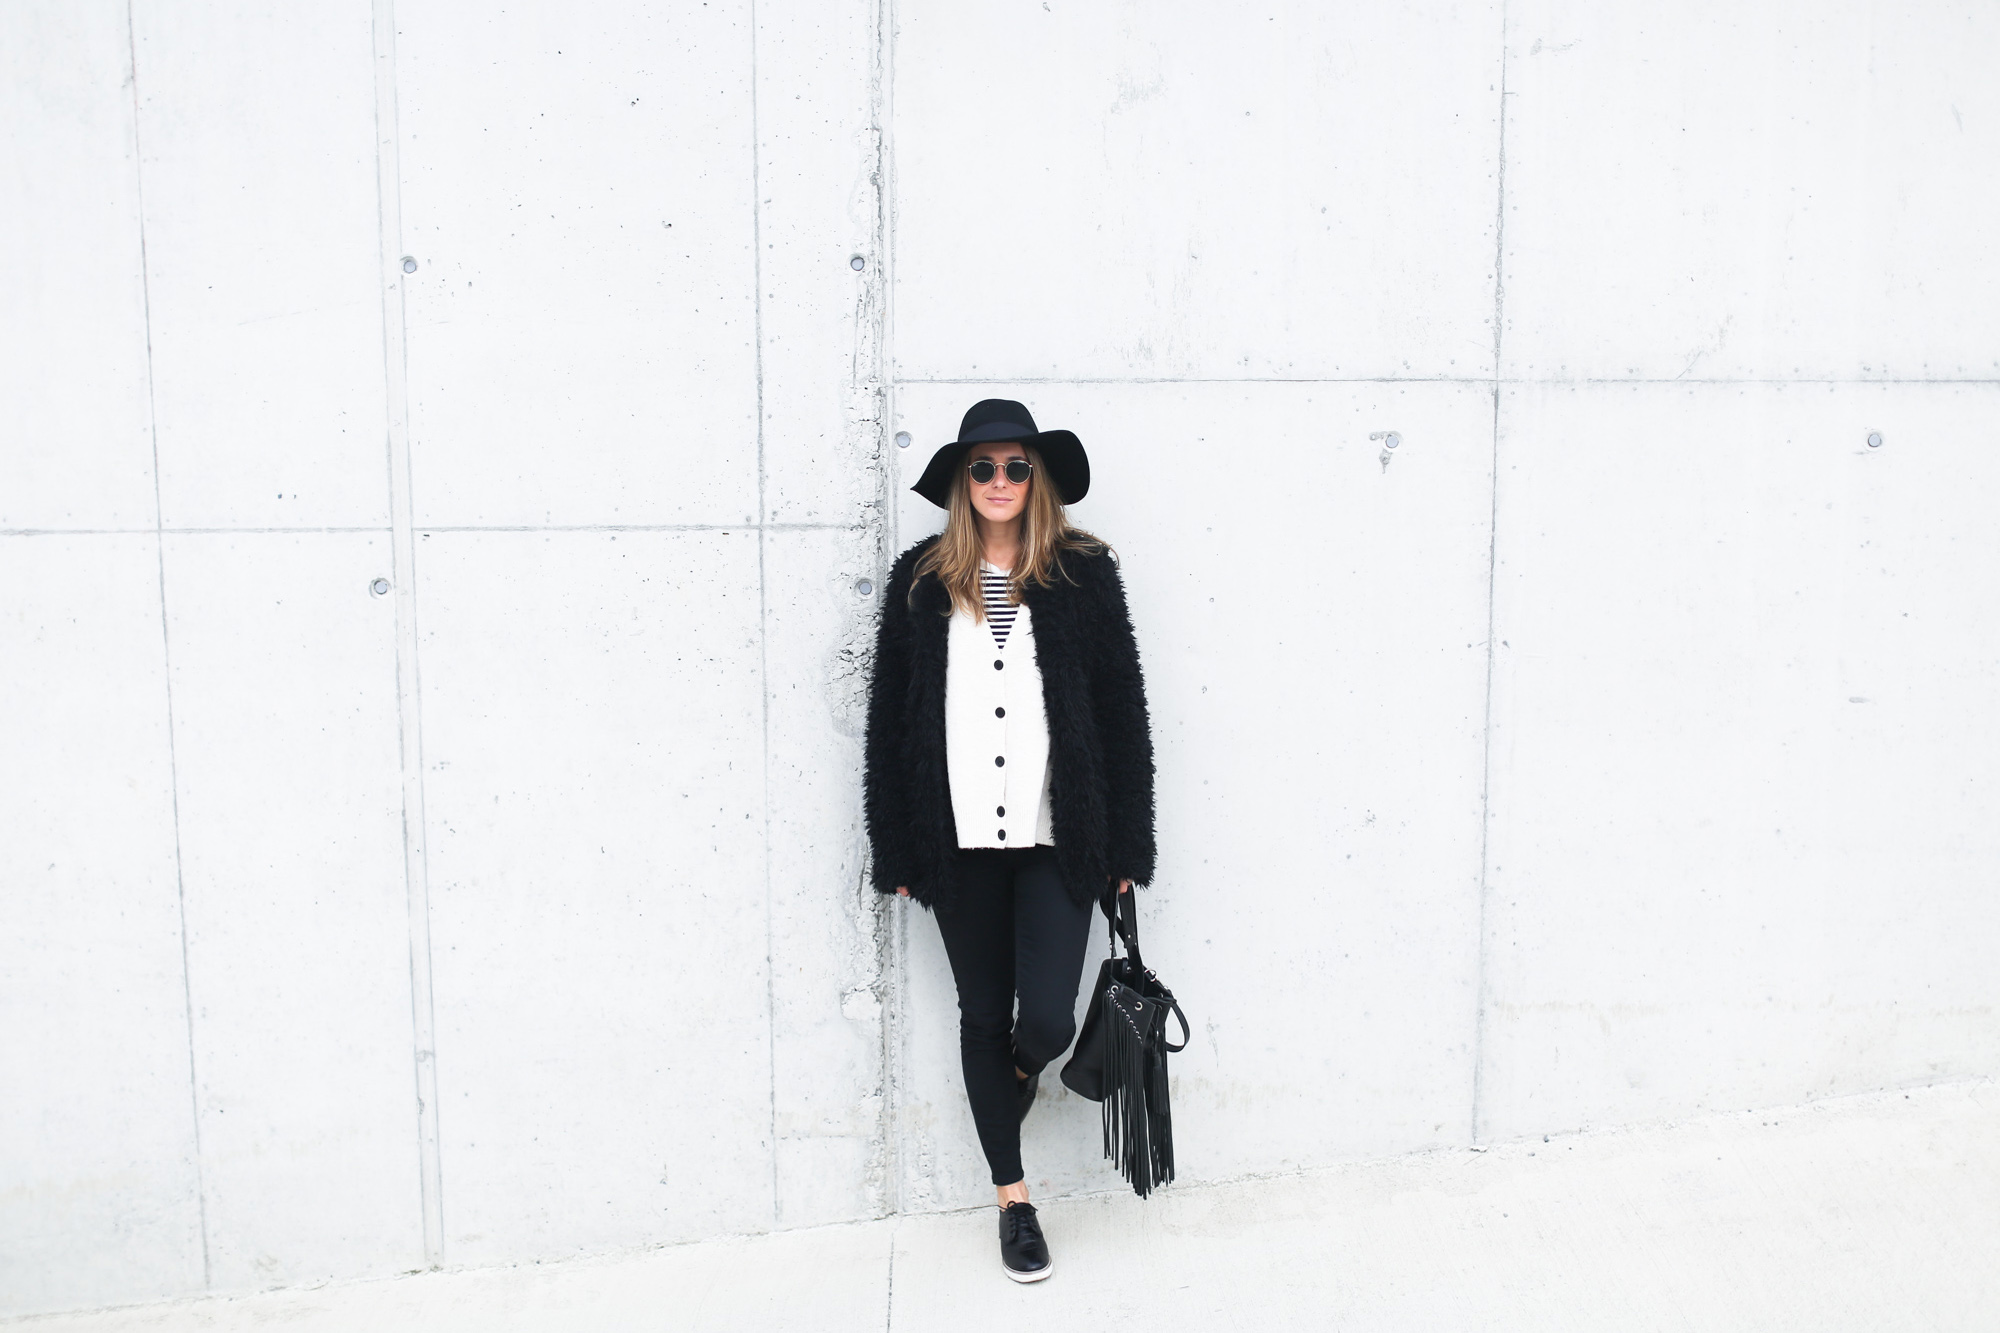 clochet_streetstyle_Billabong_Christmas_collection_furry_coat-6